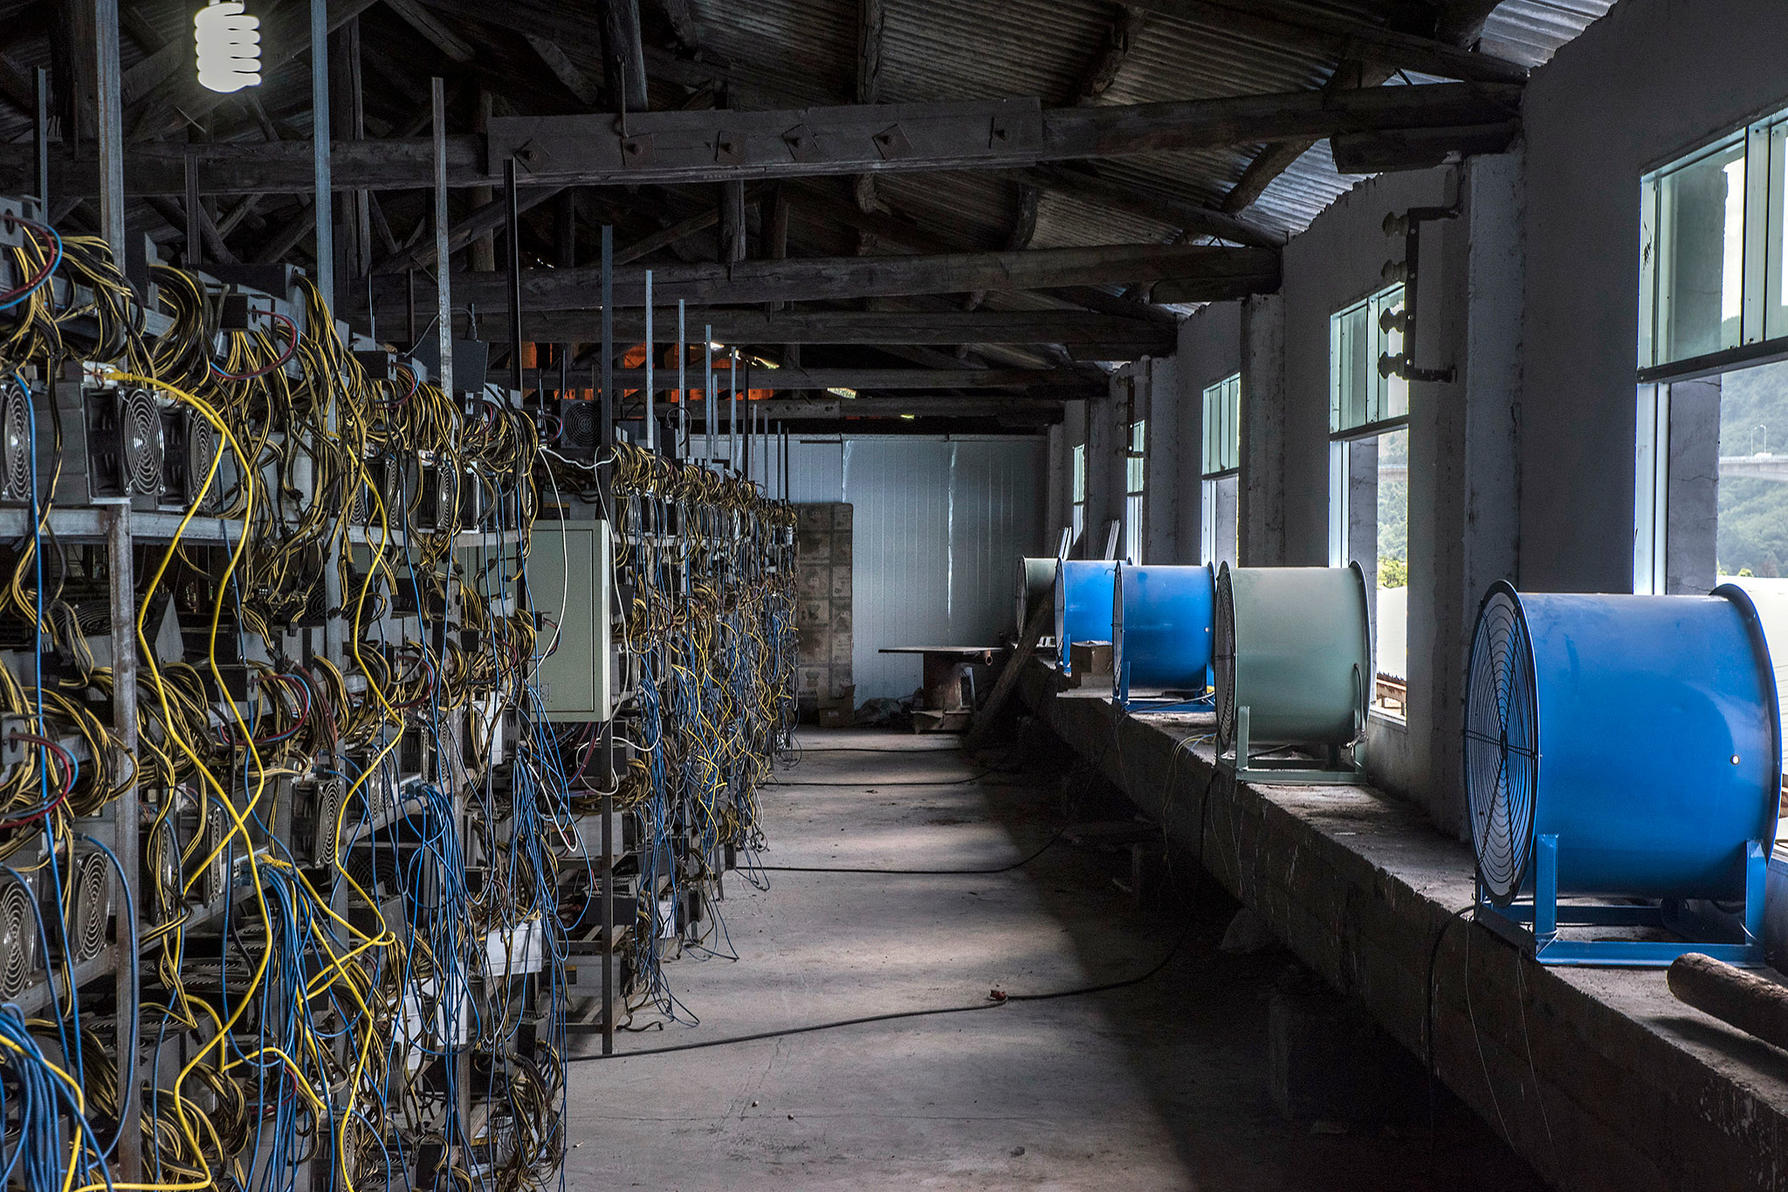 Fans cool racks of bitcoin-mining machines at a server farm.